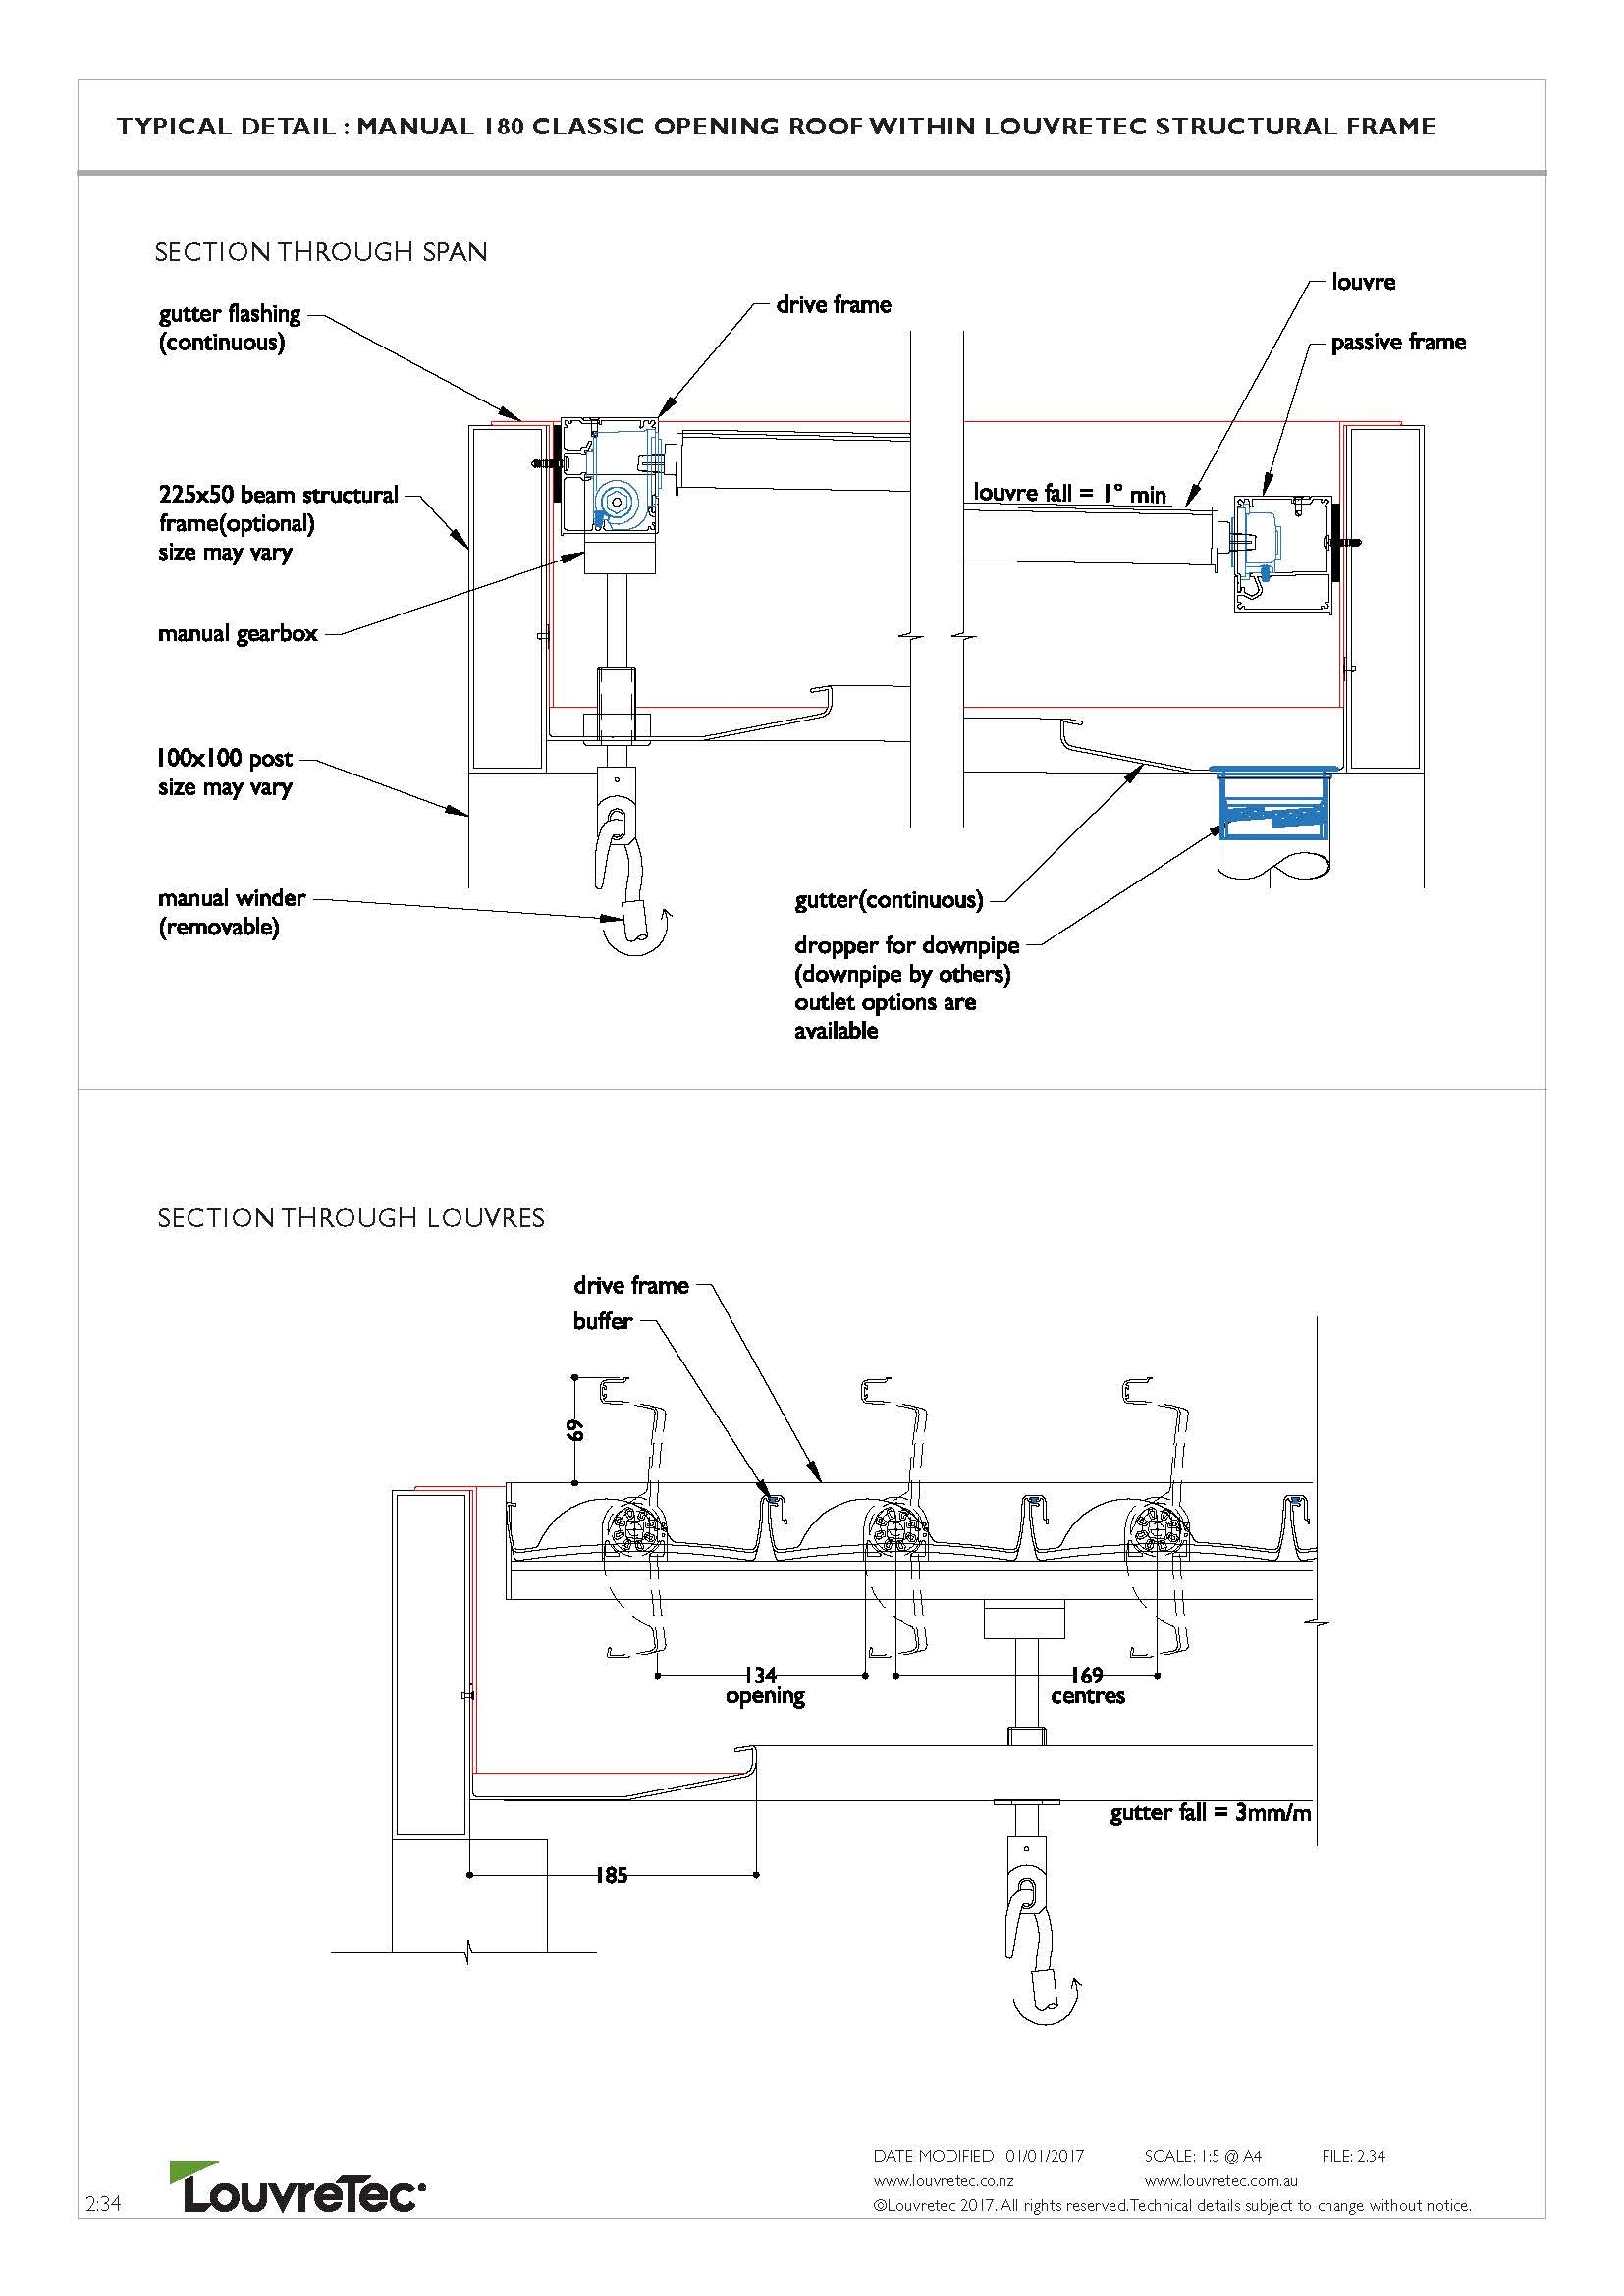 2D Typical Detail Hand Operable 2.34